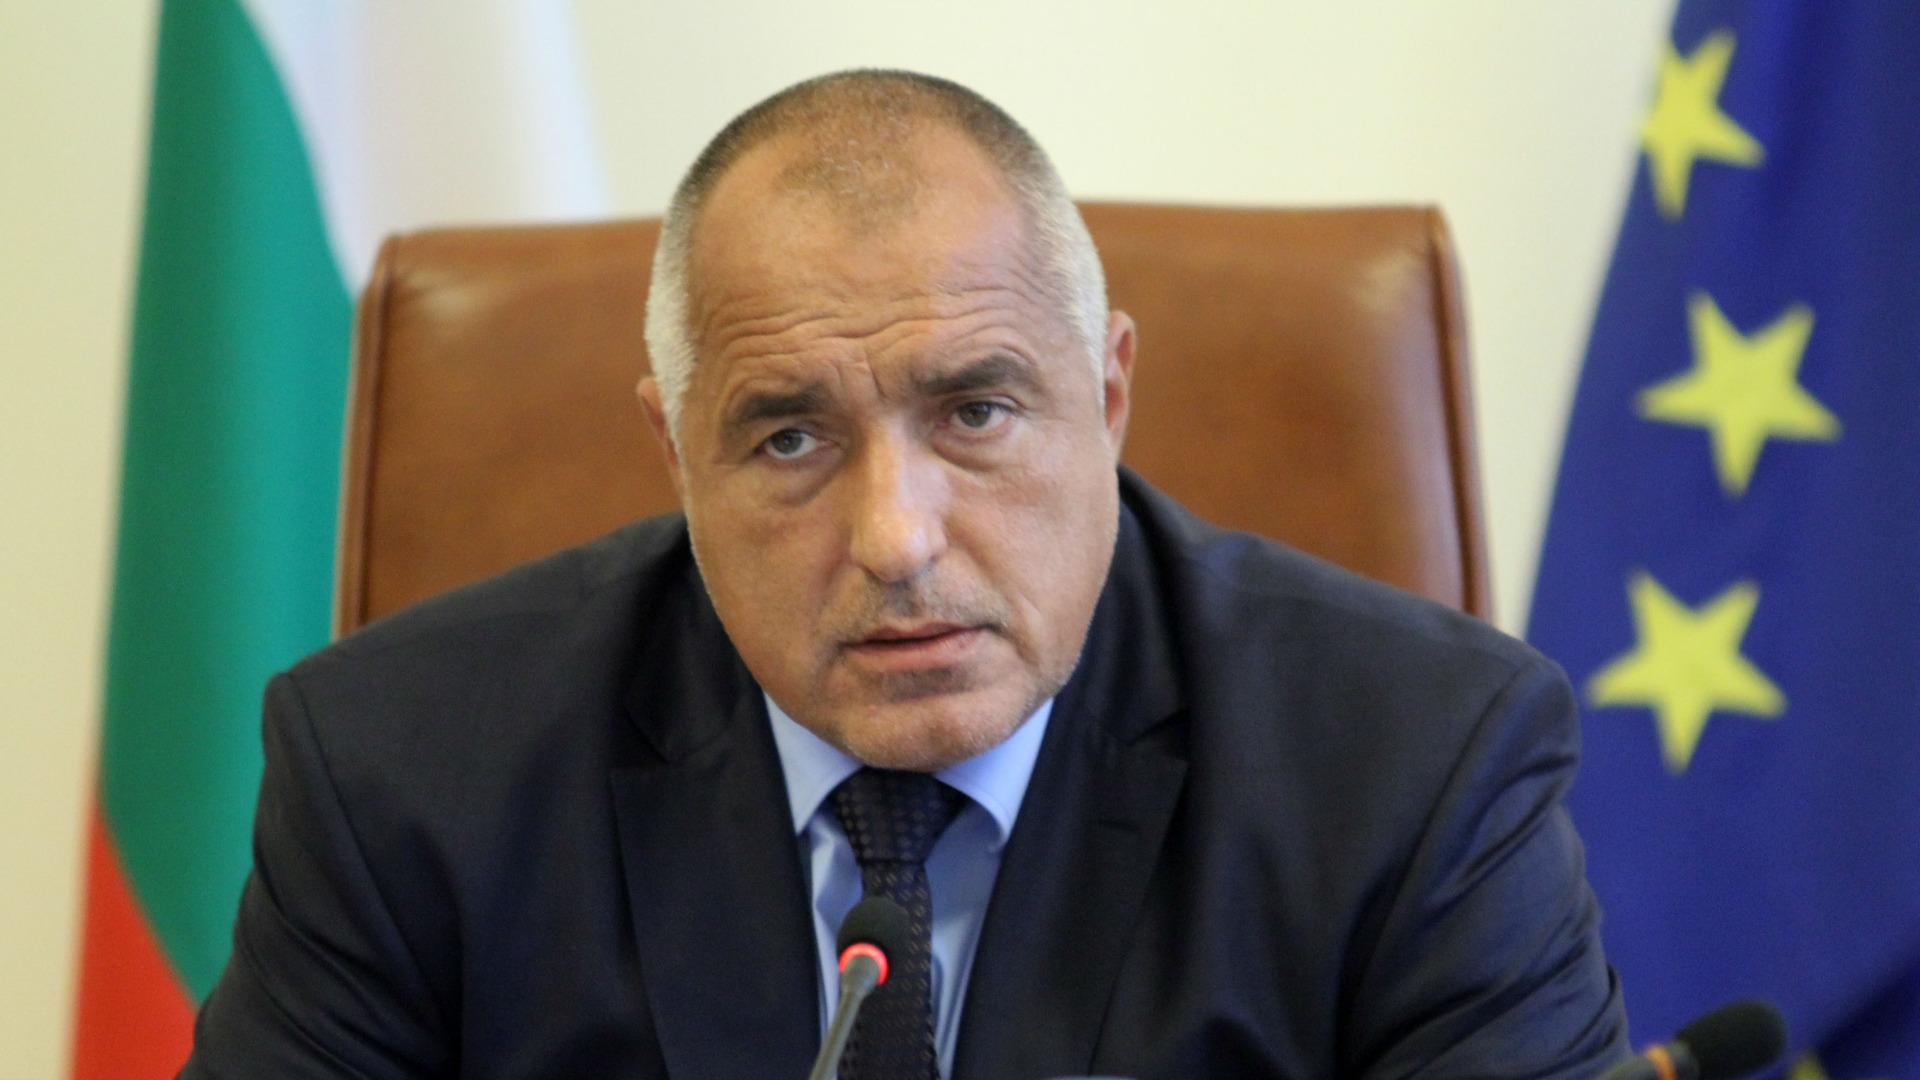 Agenda of Bulgarian prime minister visit to Azerbaijan revealed